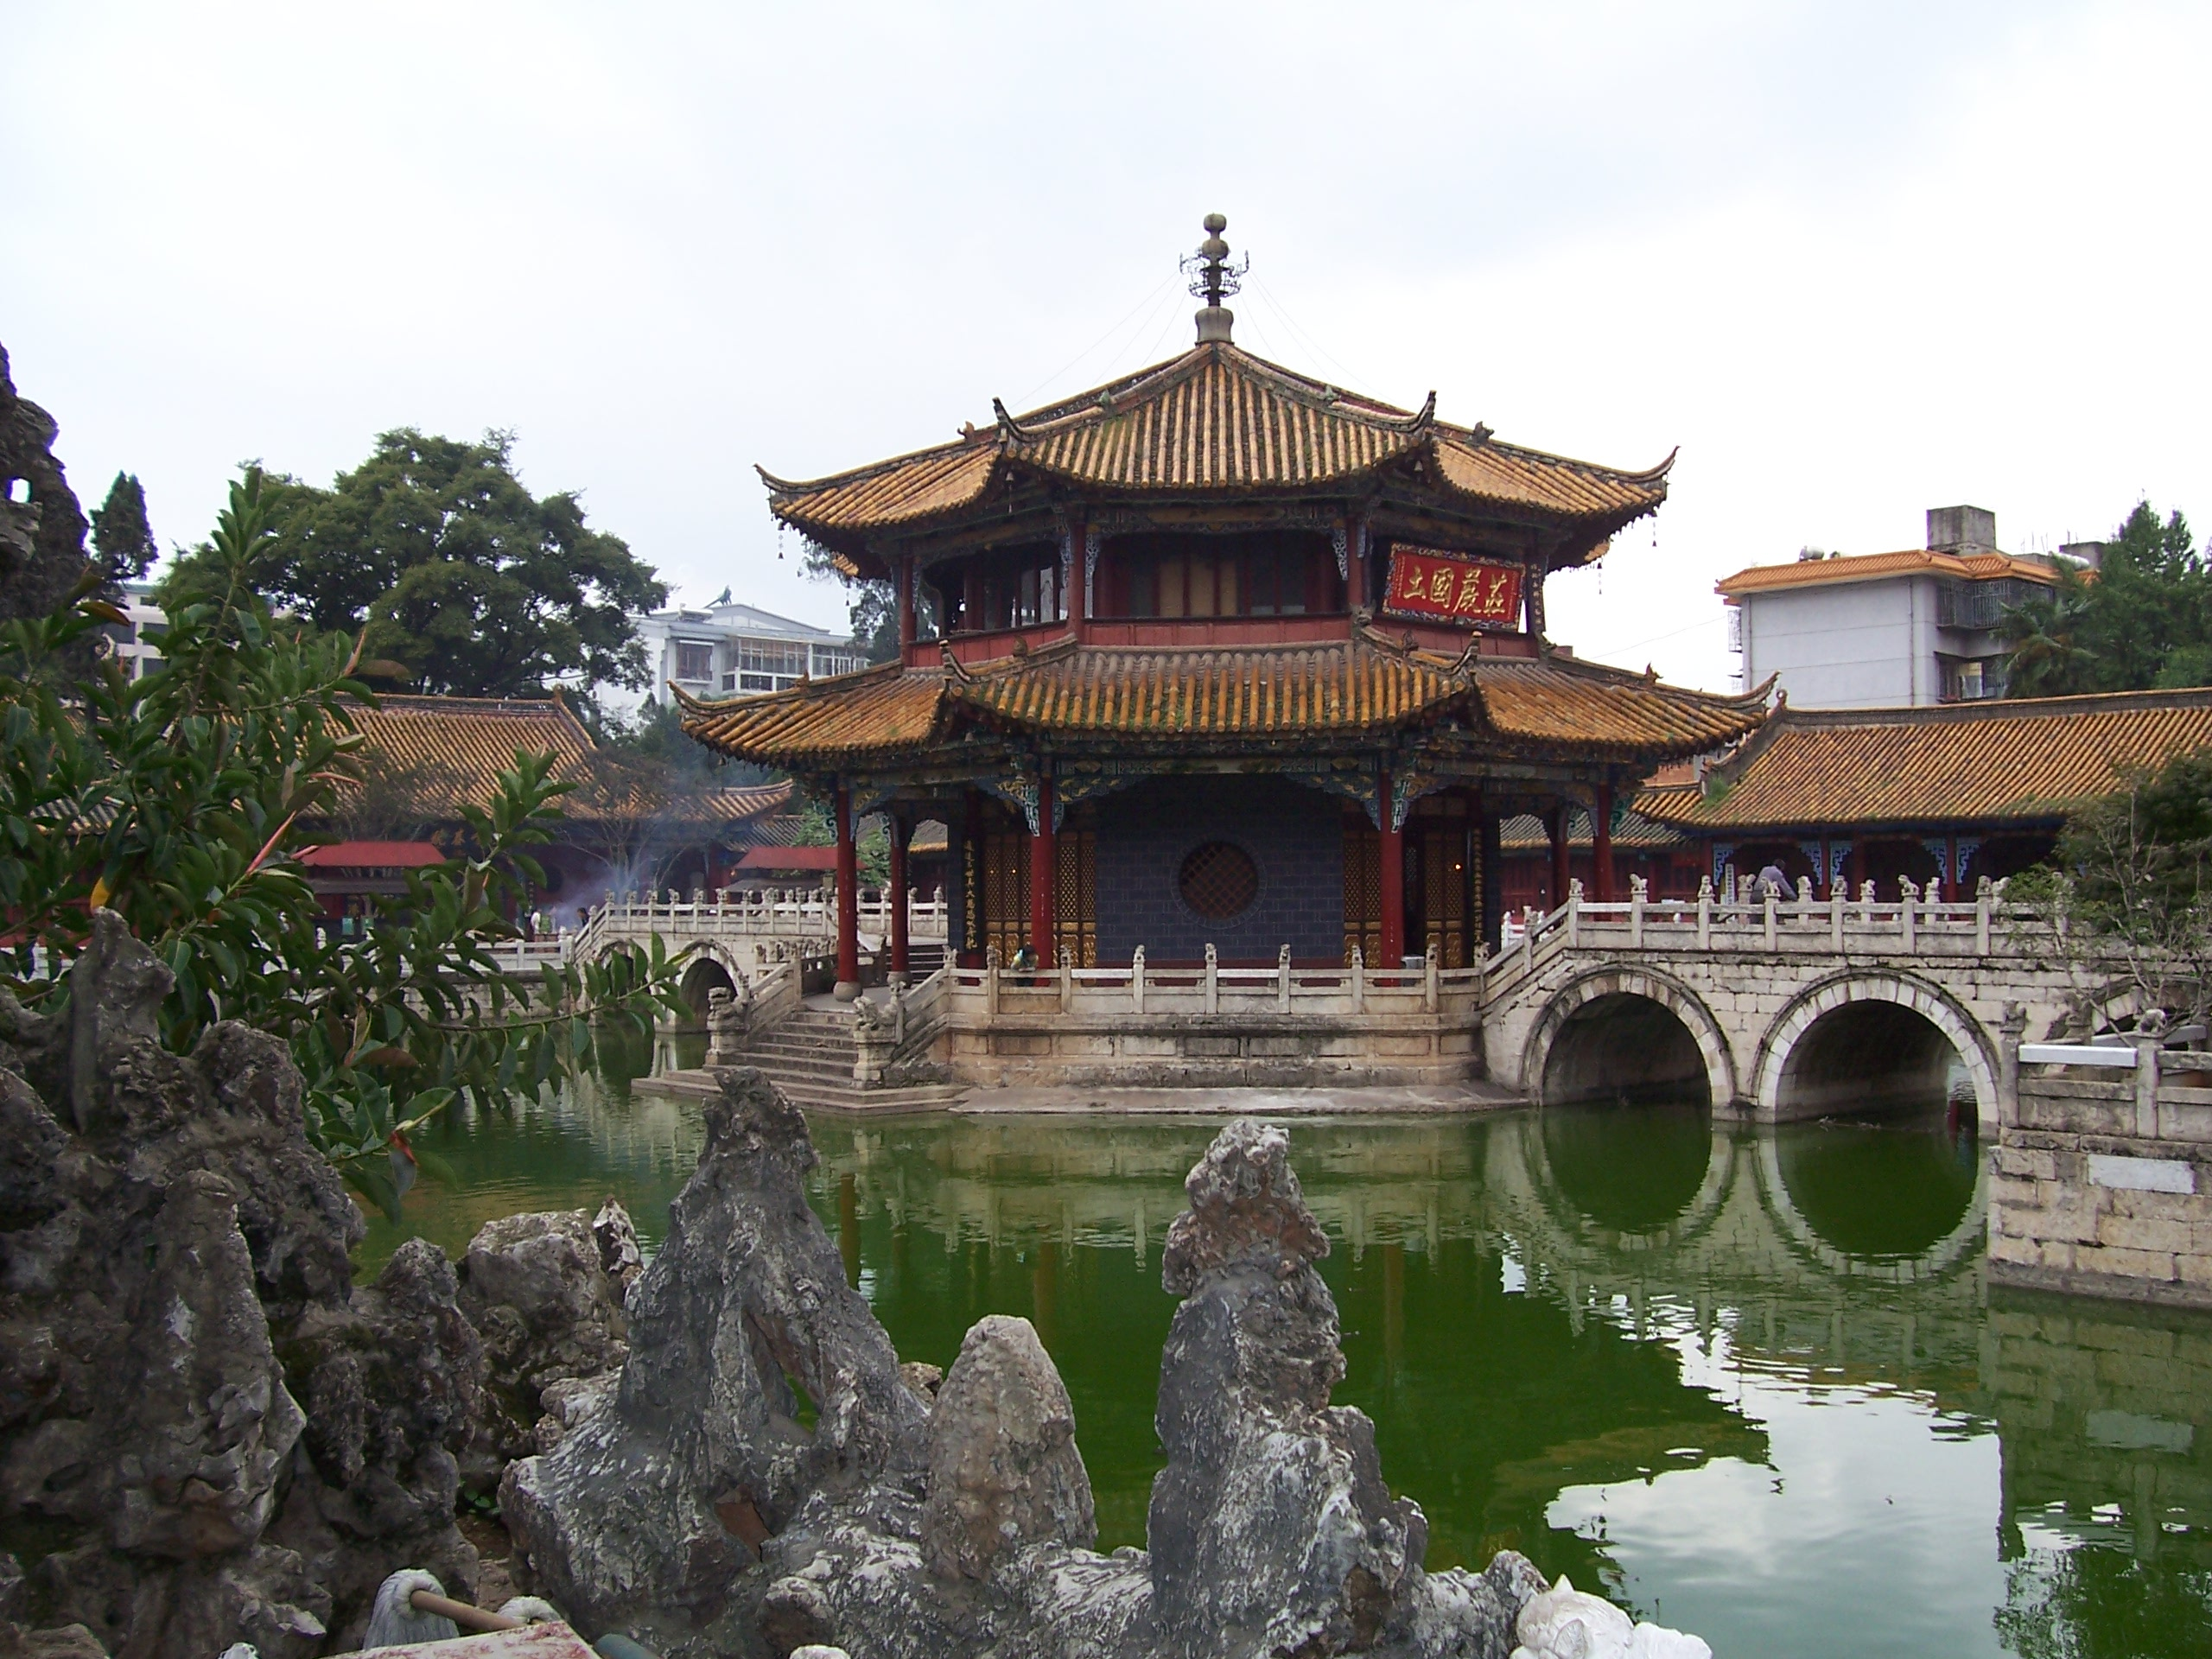 Kunming China  City pictures : Kunming temple2 Wikipedia, the free encyclopedia